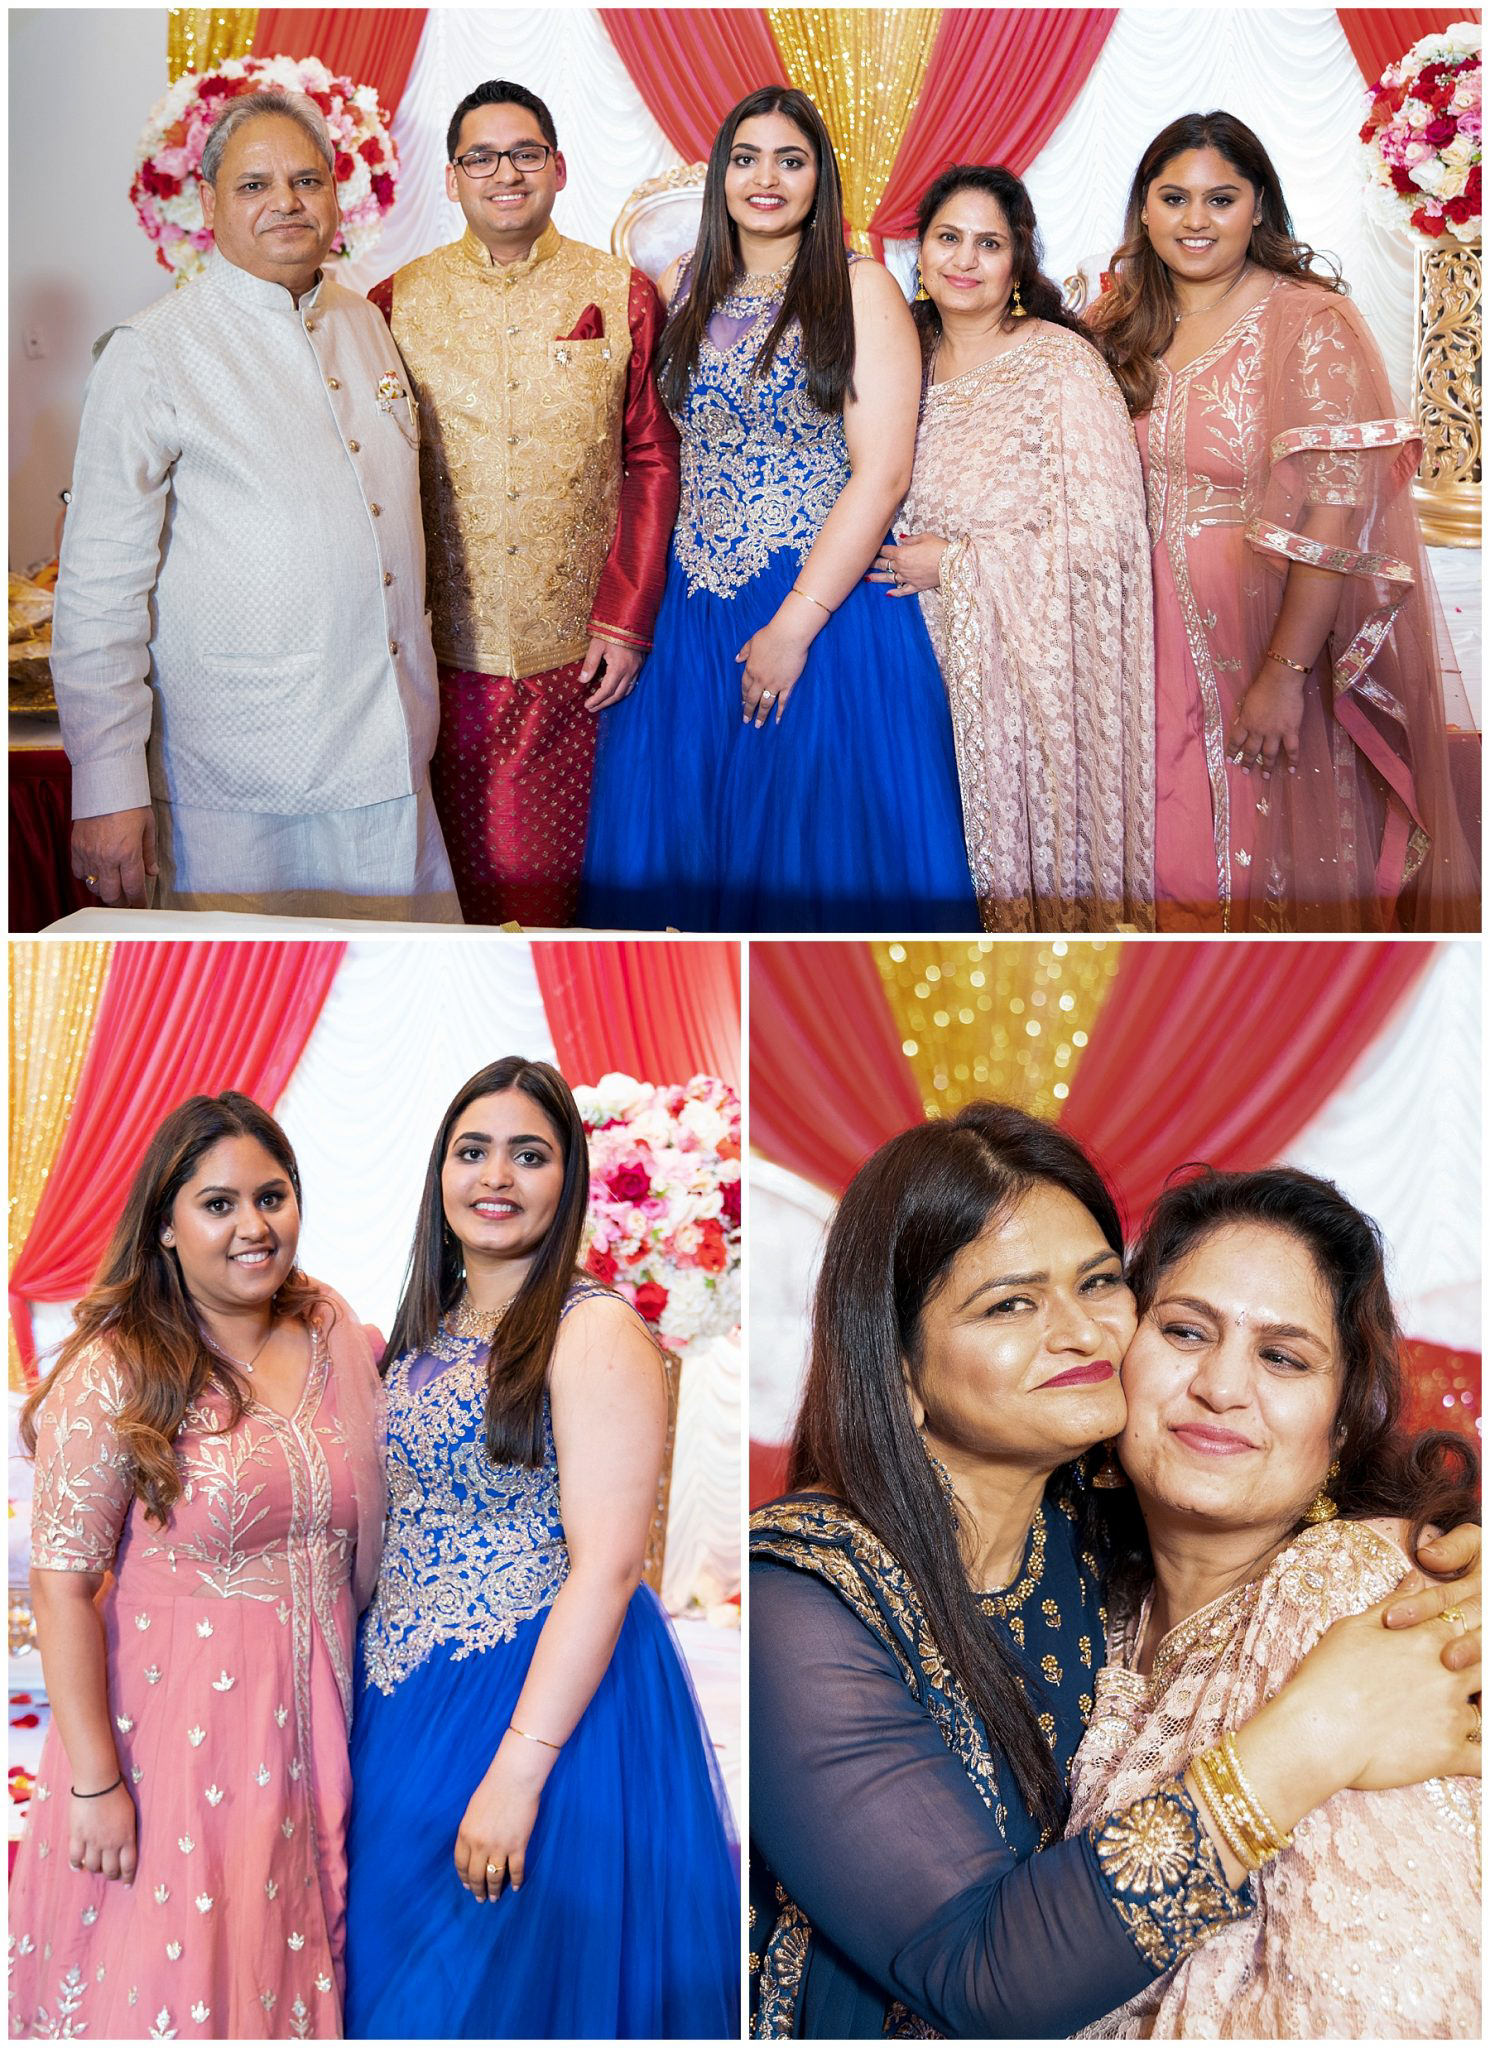 royal-alberts-palace-fords-nj-engagement-vidushi-ankush-32.jpg